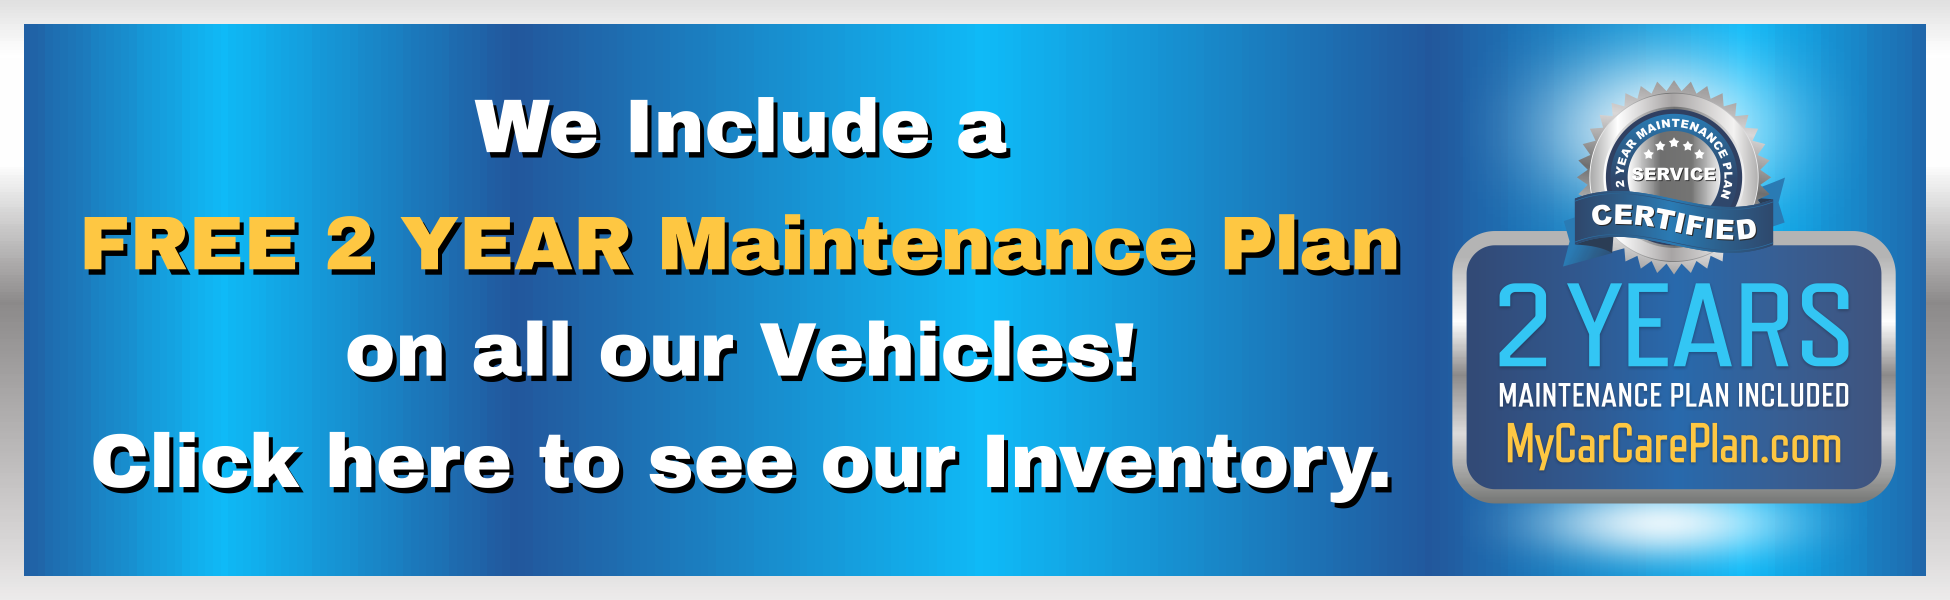 Free 2 year maintenance plan